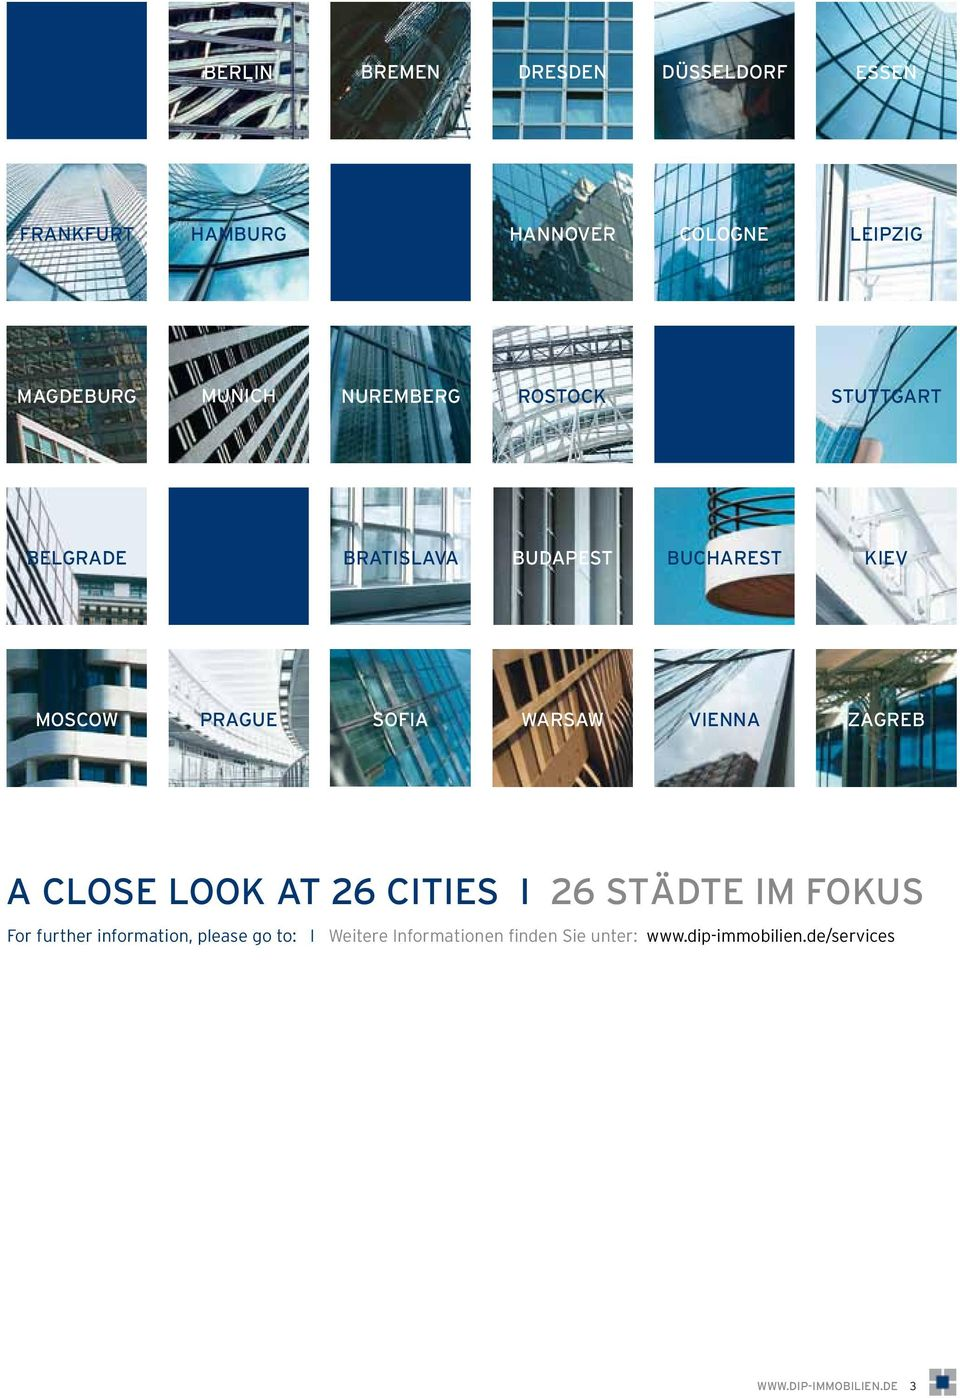 VIENNA ZAGREB A CLOSE LOOK AT 26 CITIES I 26 STÄDTE IM FOKUS For further information, please go